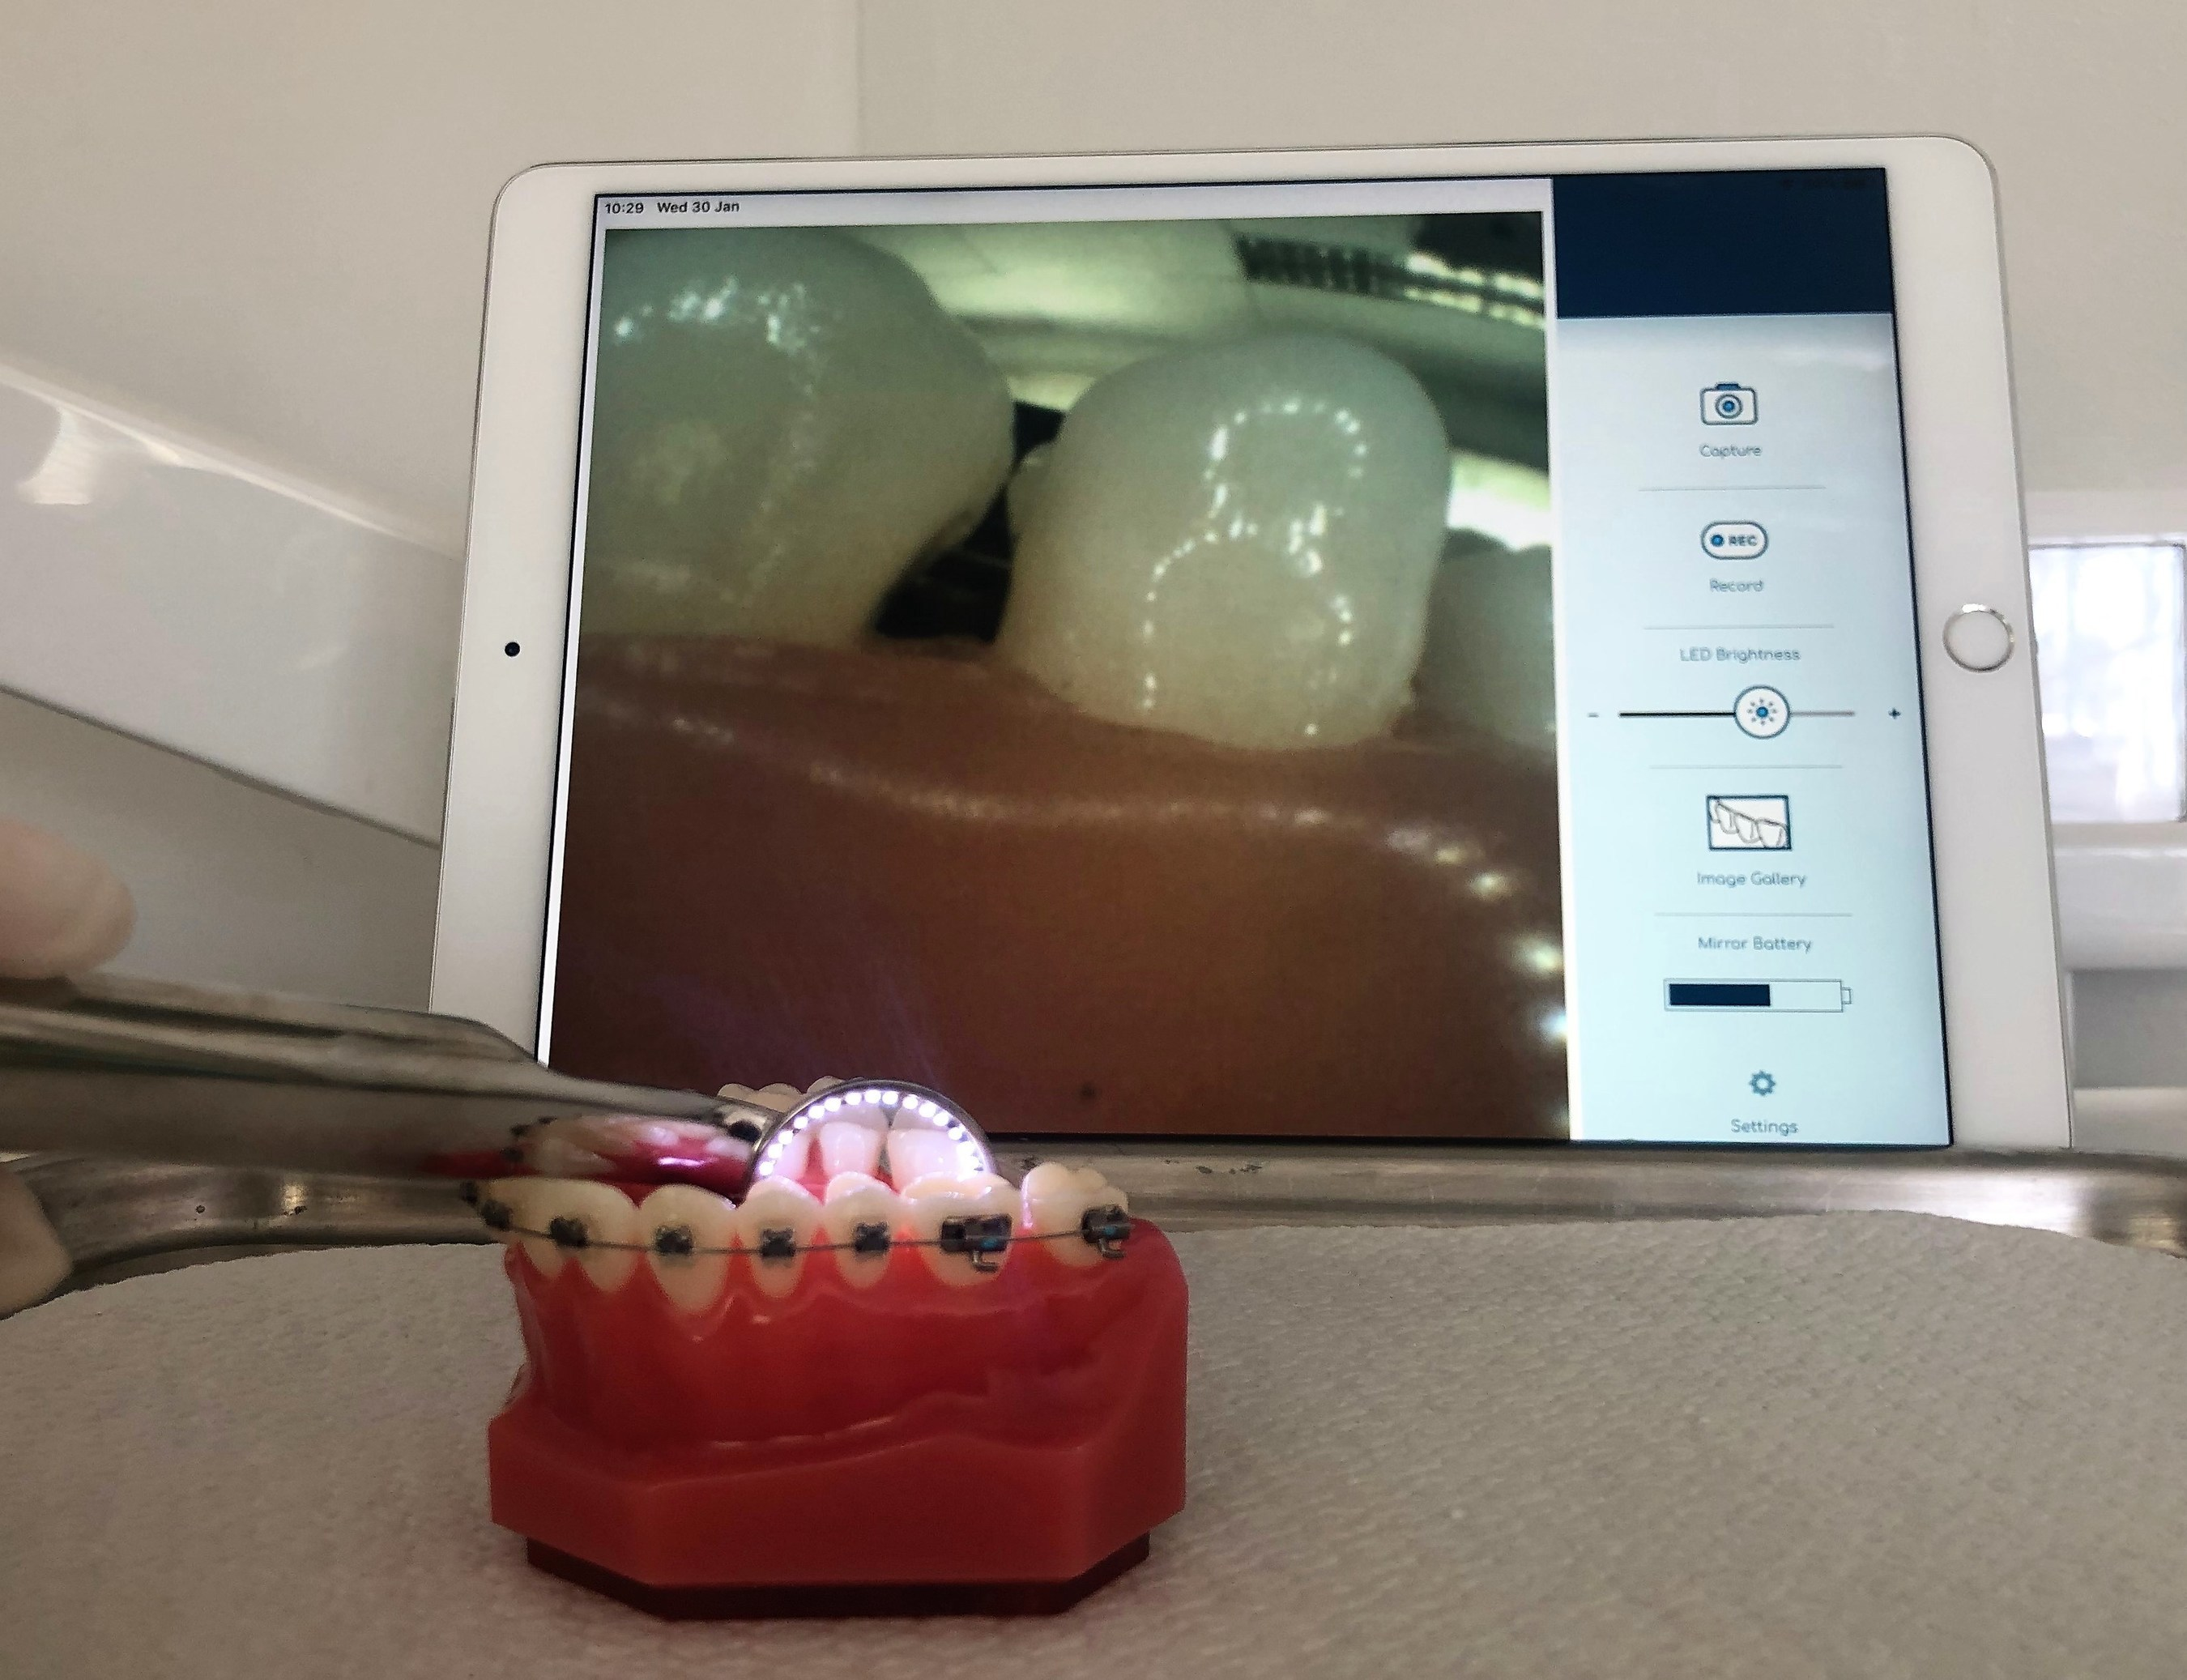 OmniVision Develops Breakthrough Smart Dental Mirror - iData